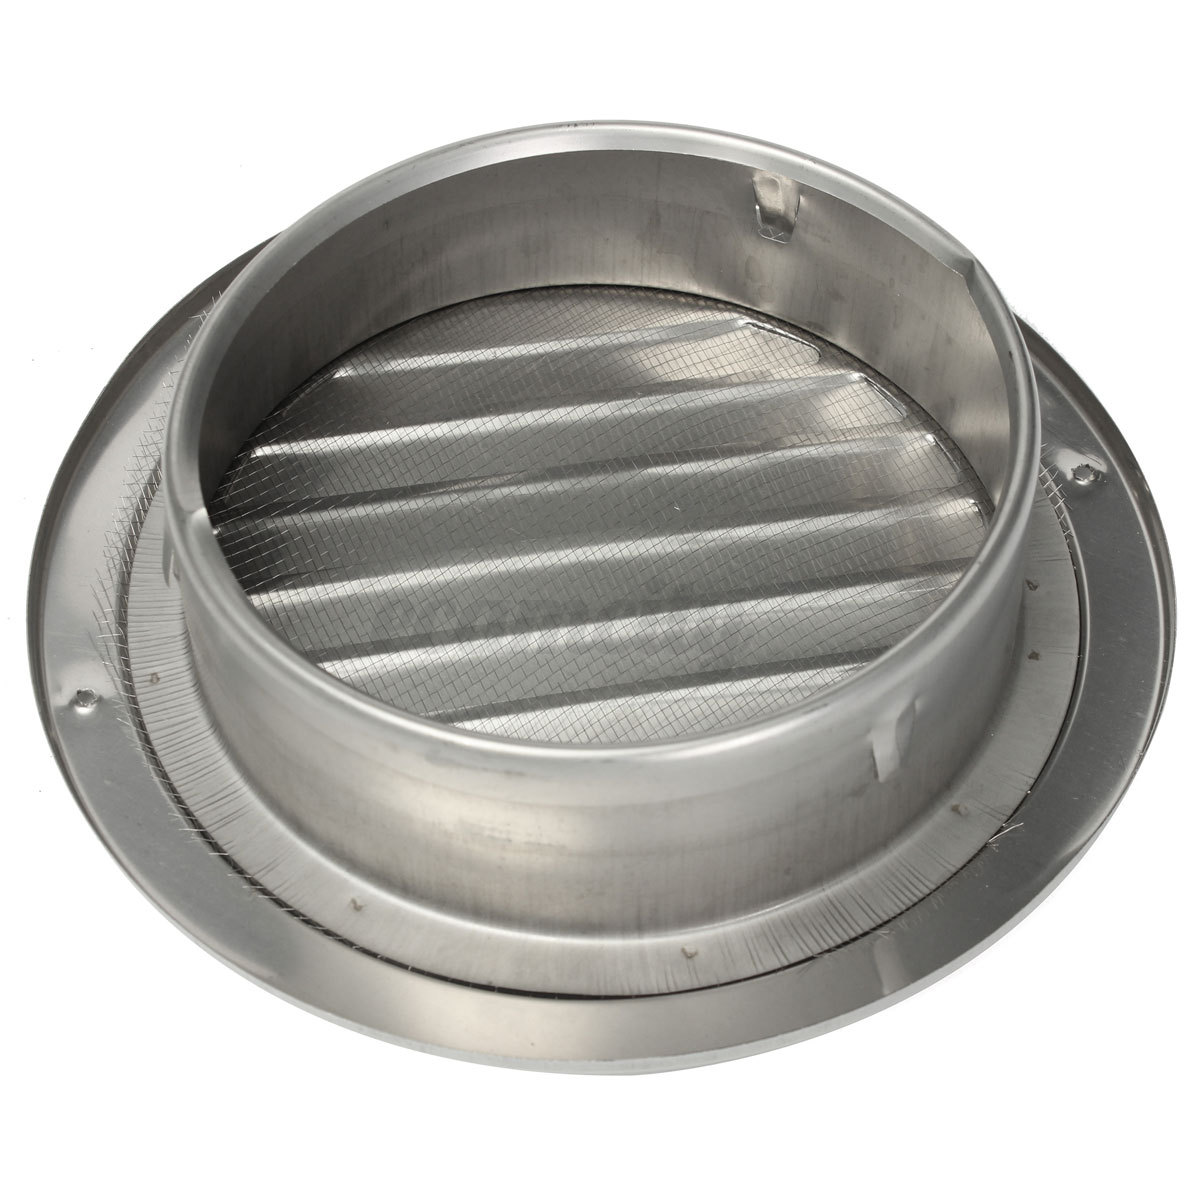 Metal Circle Air Vent Grille Round Ducting Ventilation